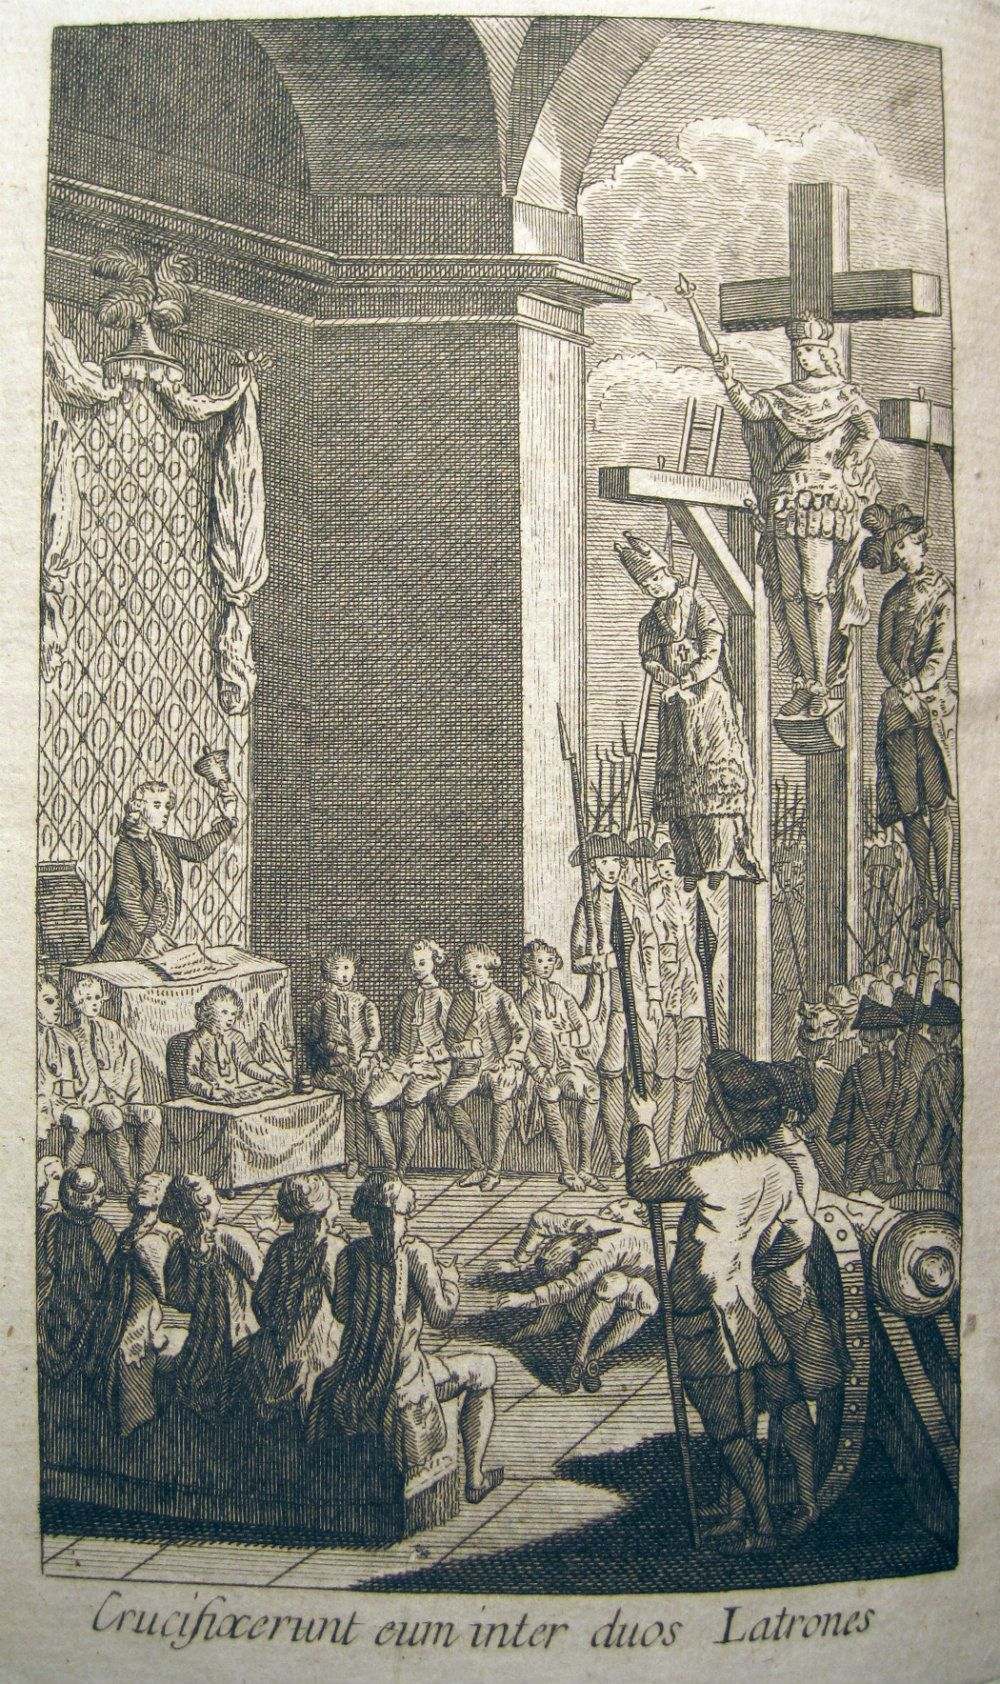 This disturbing pamphlet shows the King Louis XVI being crucified between the clergy and the nobility